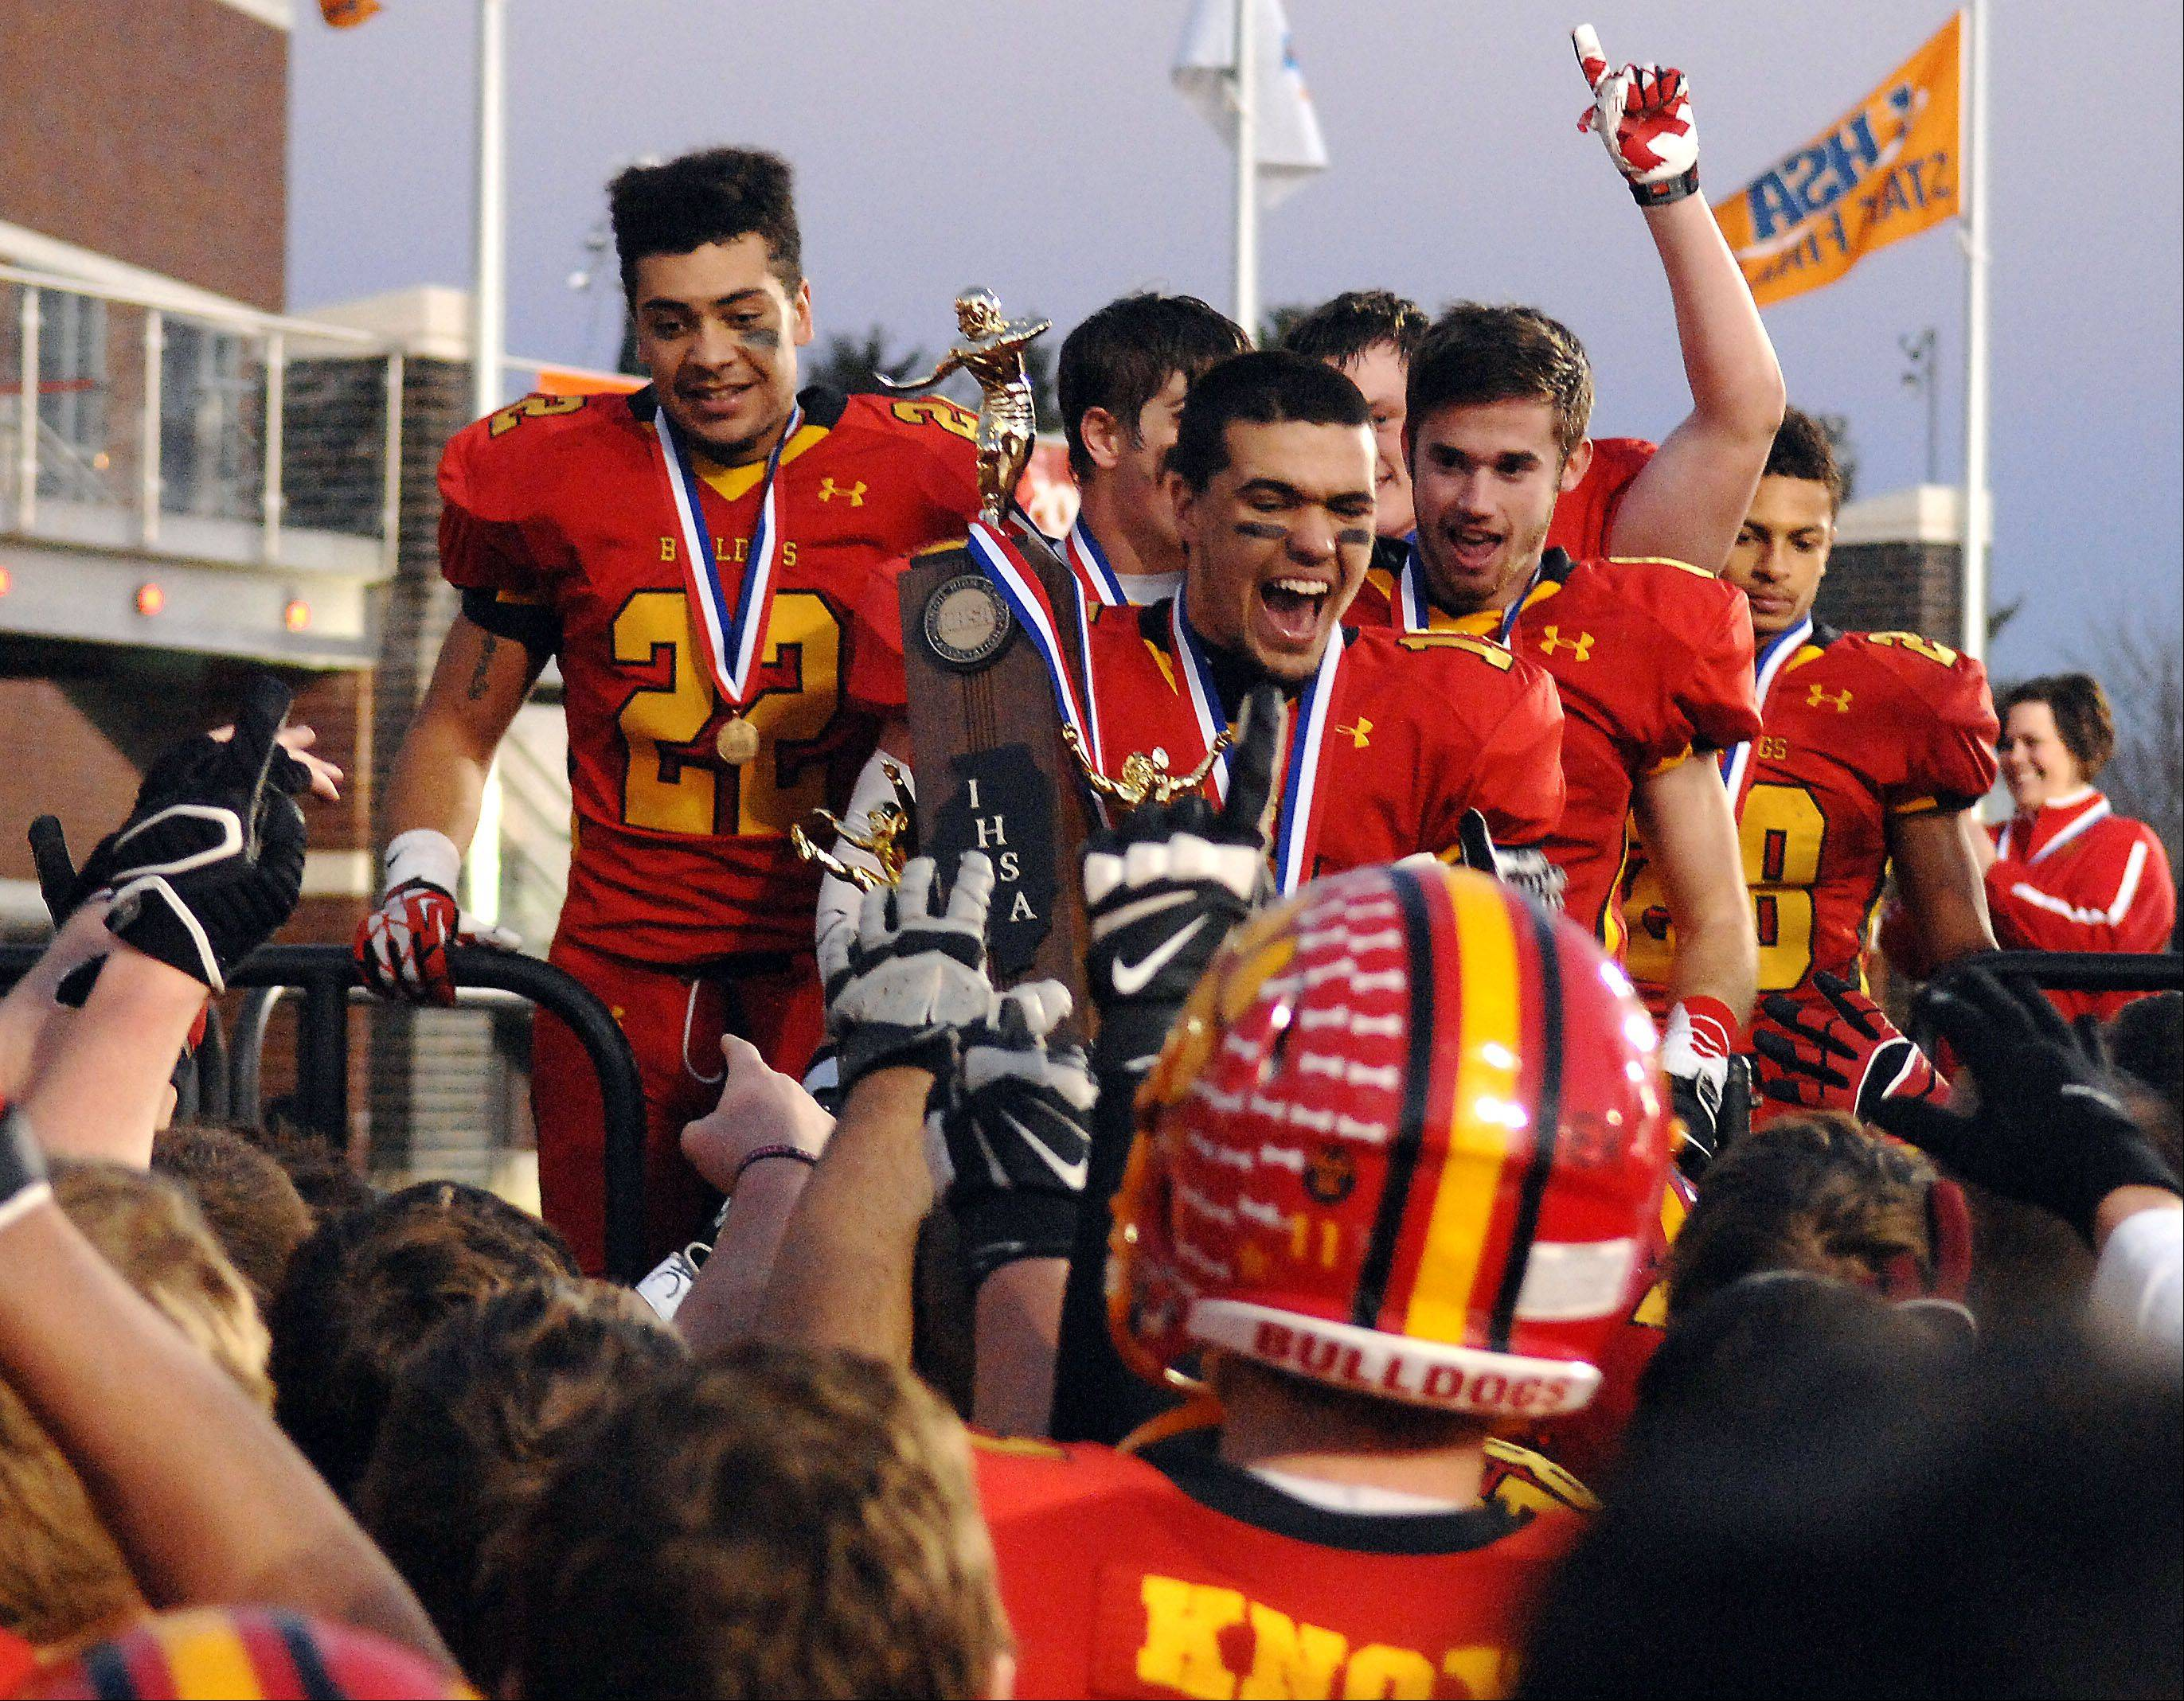 Batavia's Micah Coffey (15) brings the 6A championship trophy to his teammates after beating Richards in DeKalb.